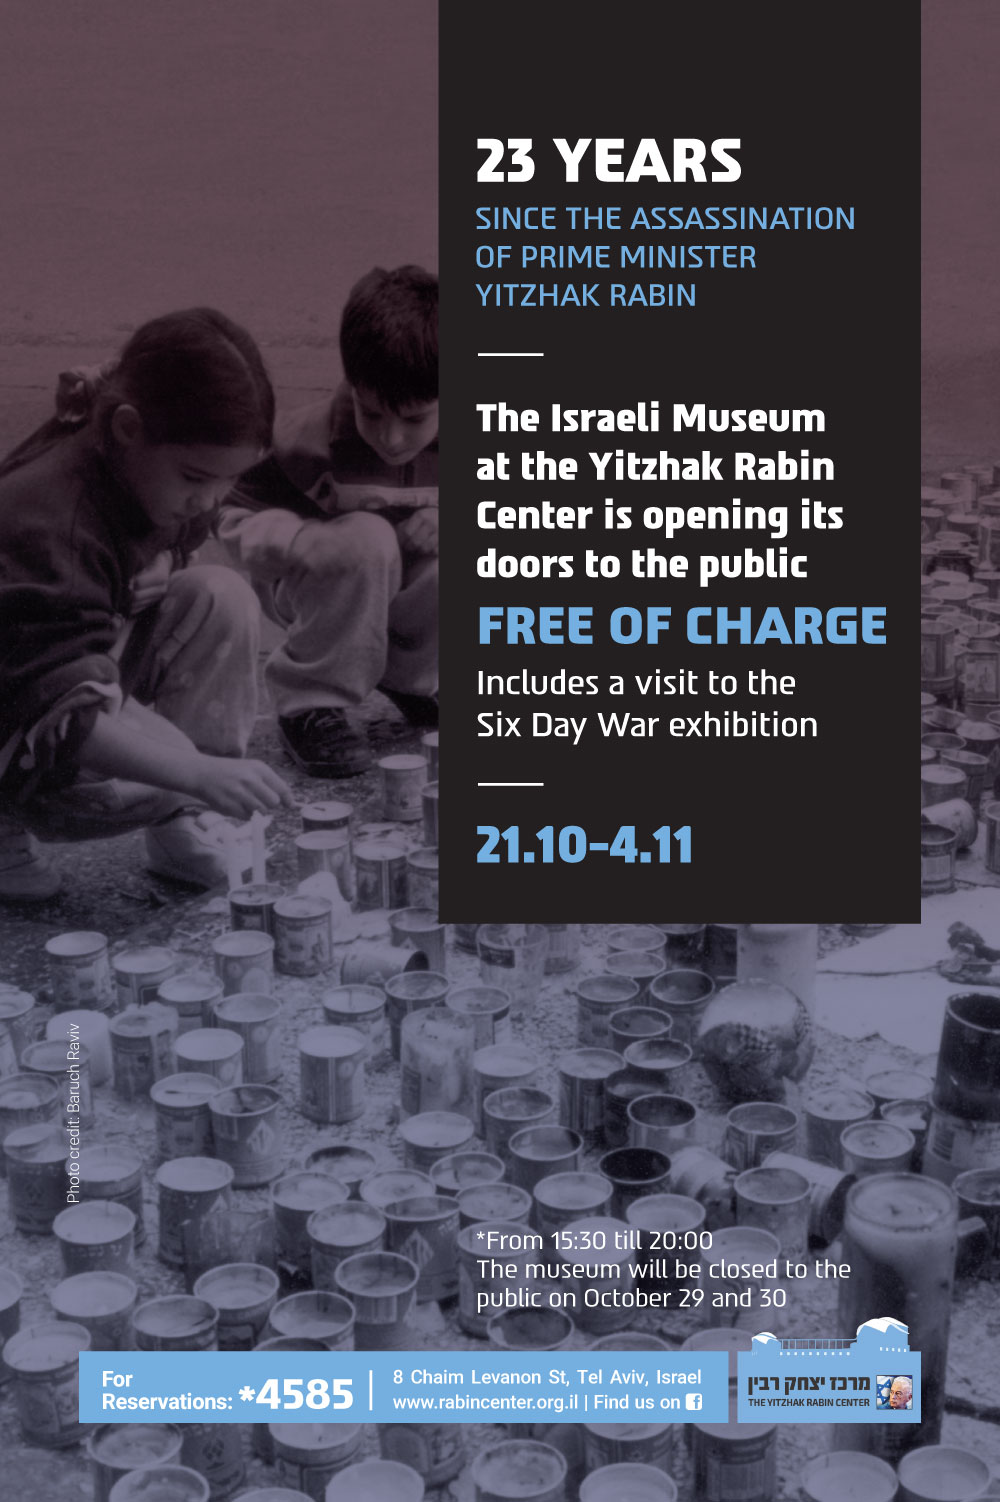 The Israeli Museum at the Yitzhak Rabin Center is opening its doors to the public FREE OF CHARGE 21.10.18-4.11.18